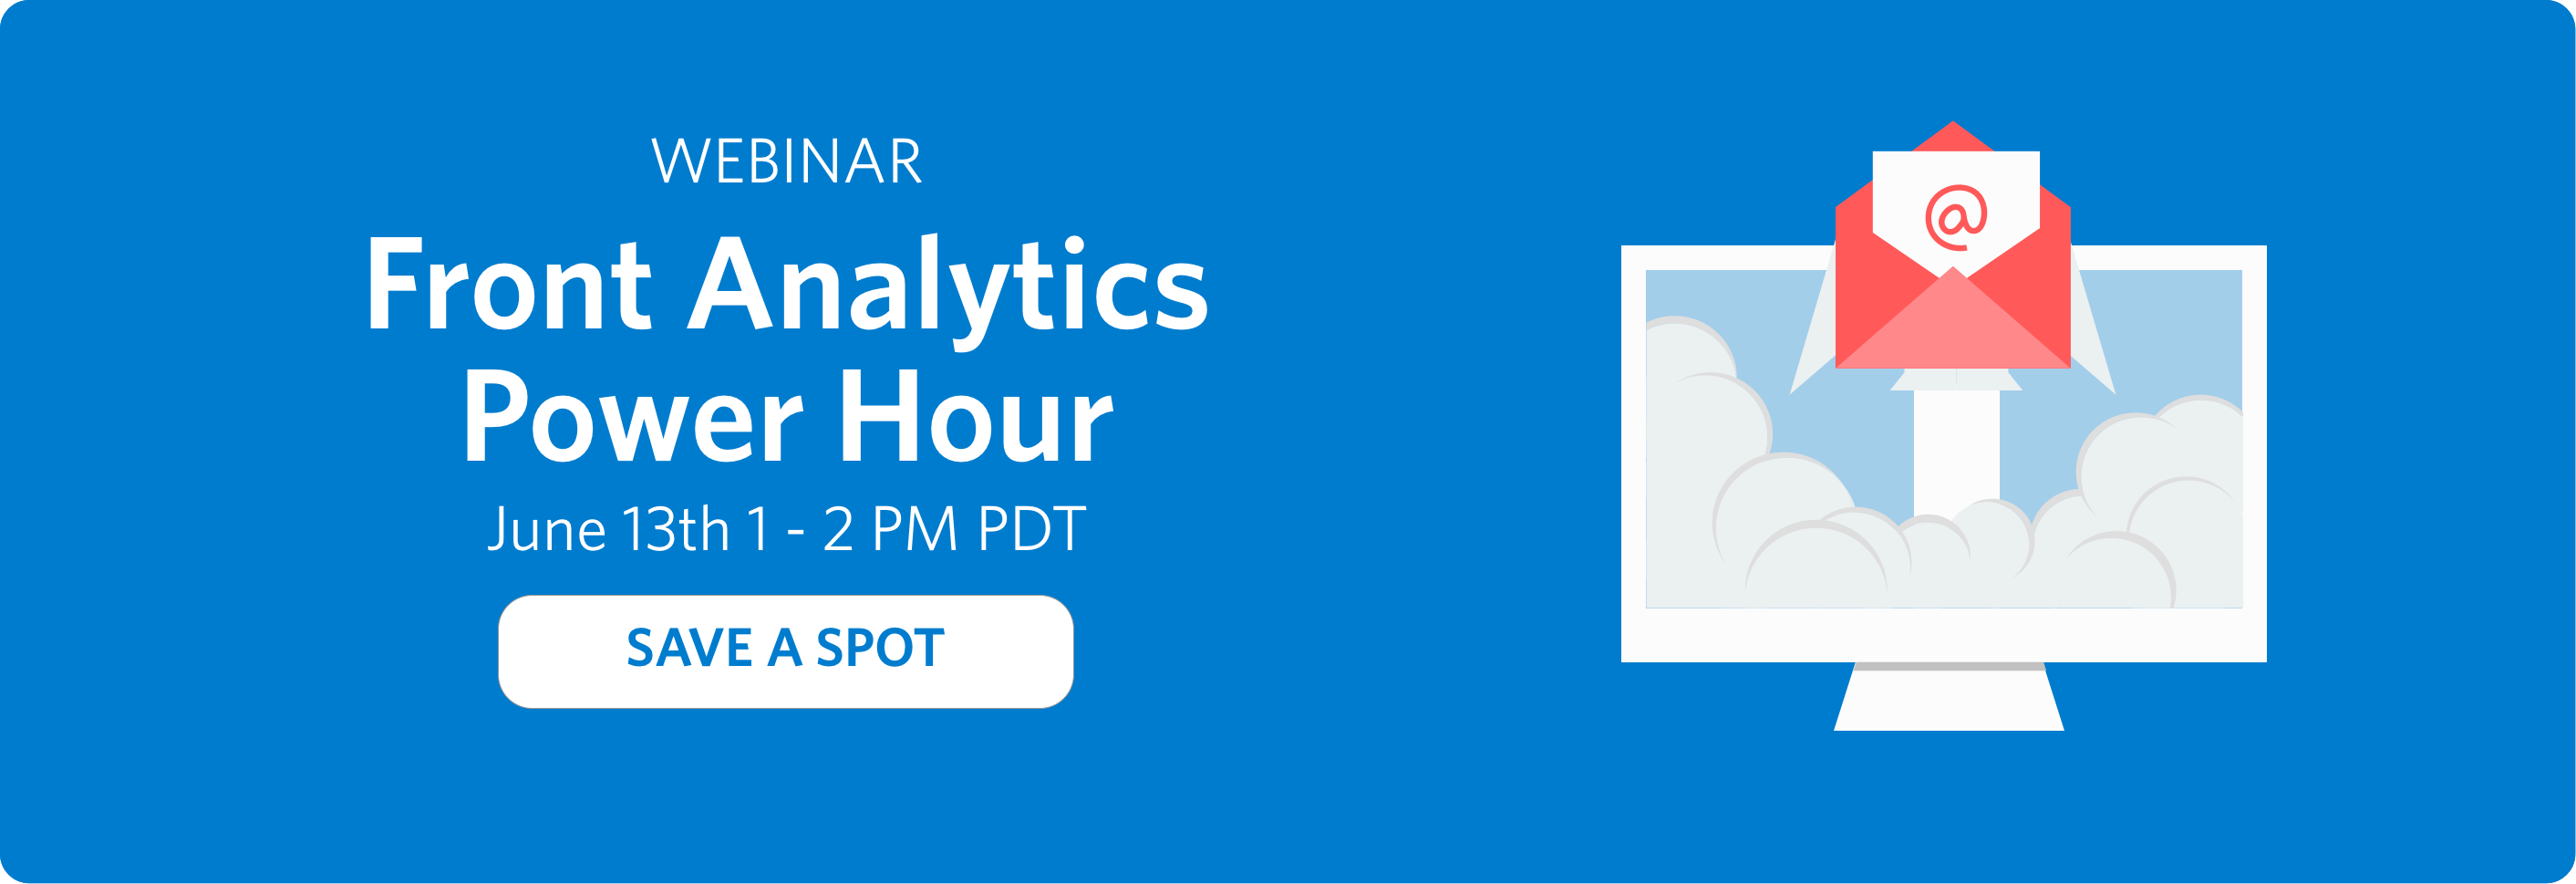 Register for the Front Analytics Power Hour Webinar